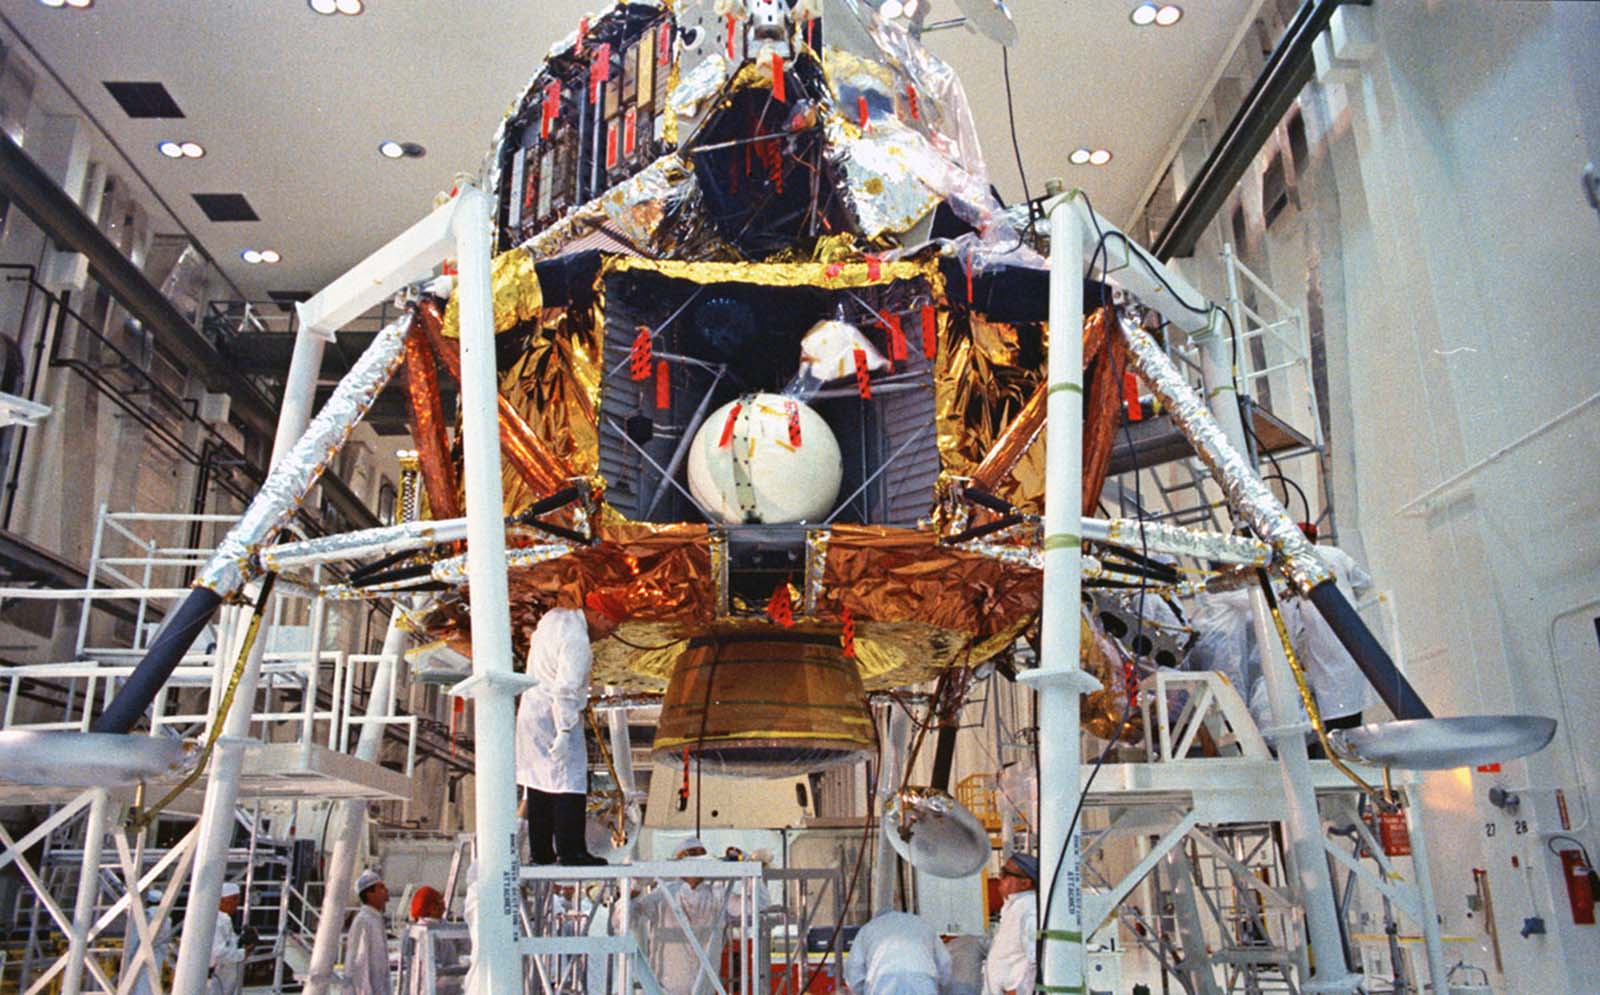 The final checkout of the Apollo 11 lunar module takes place on April 11, 1969, in the Open Bay Area of the Manned Spacecraft Operations Building at Kennedy Space Center.